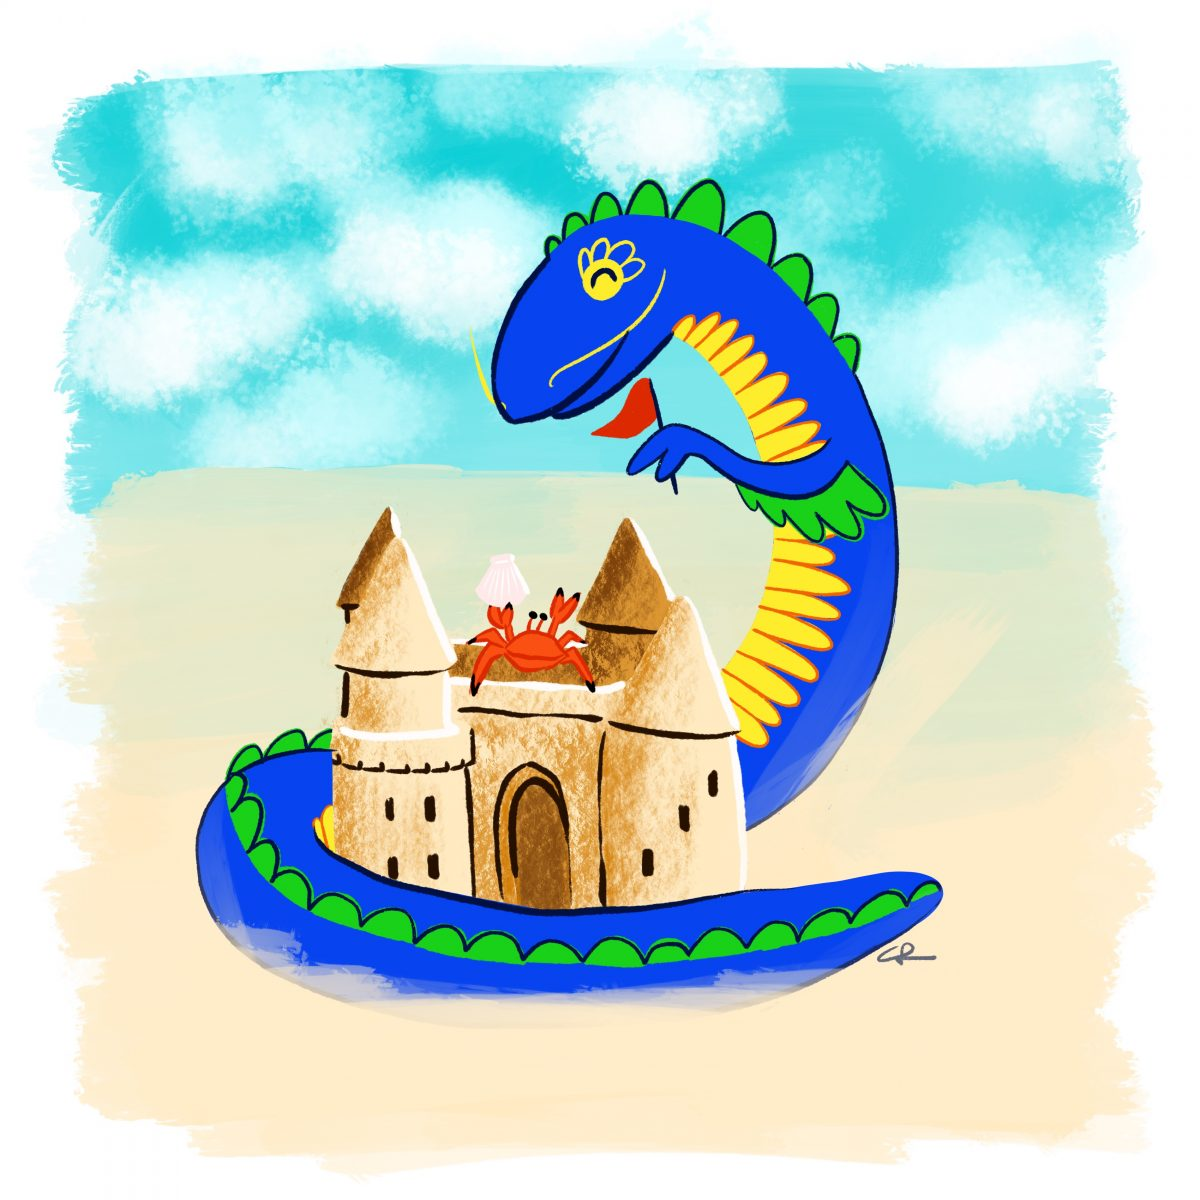 Image of dragon building a sand castle with a crab